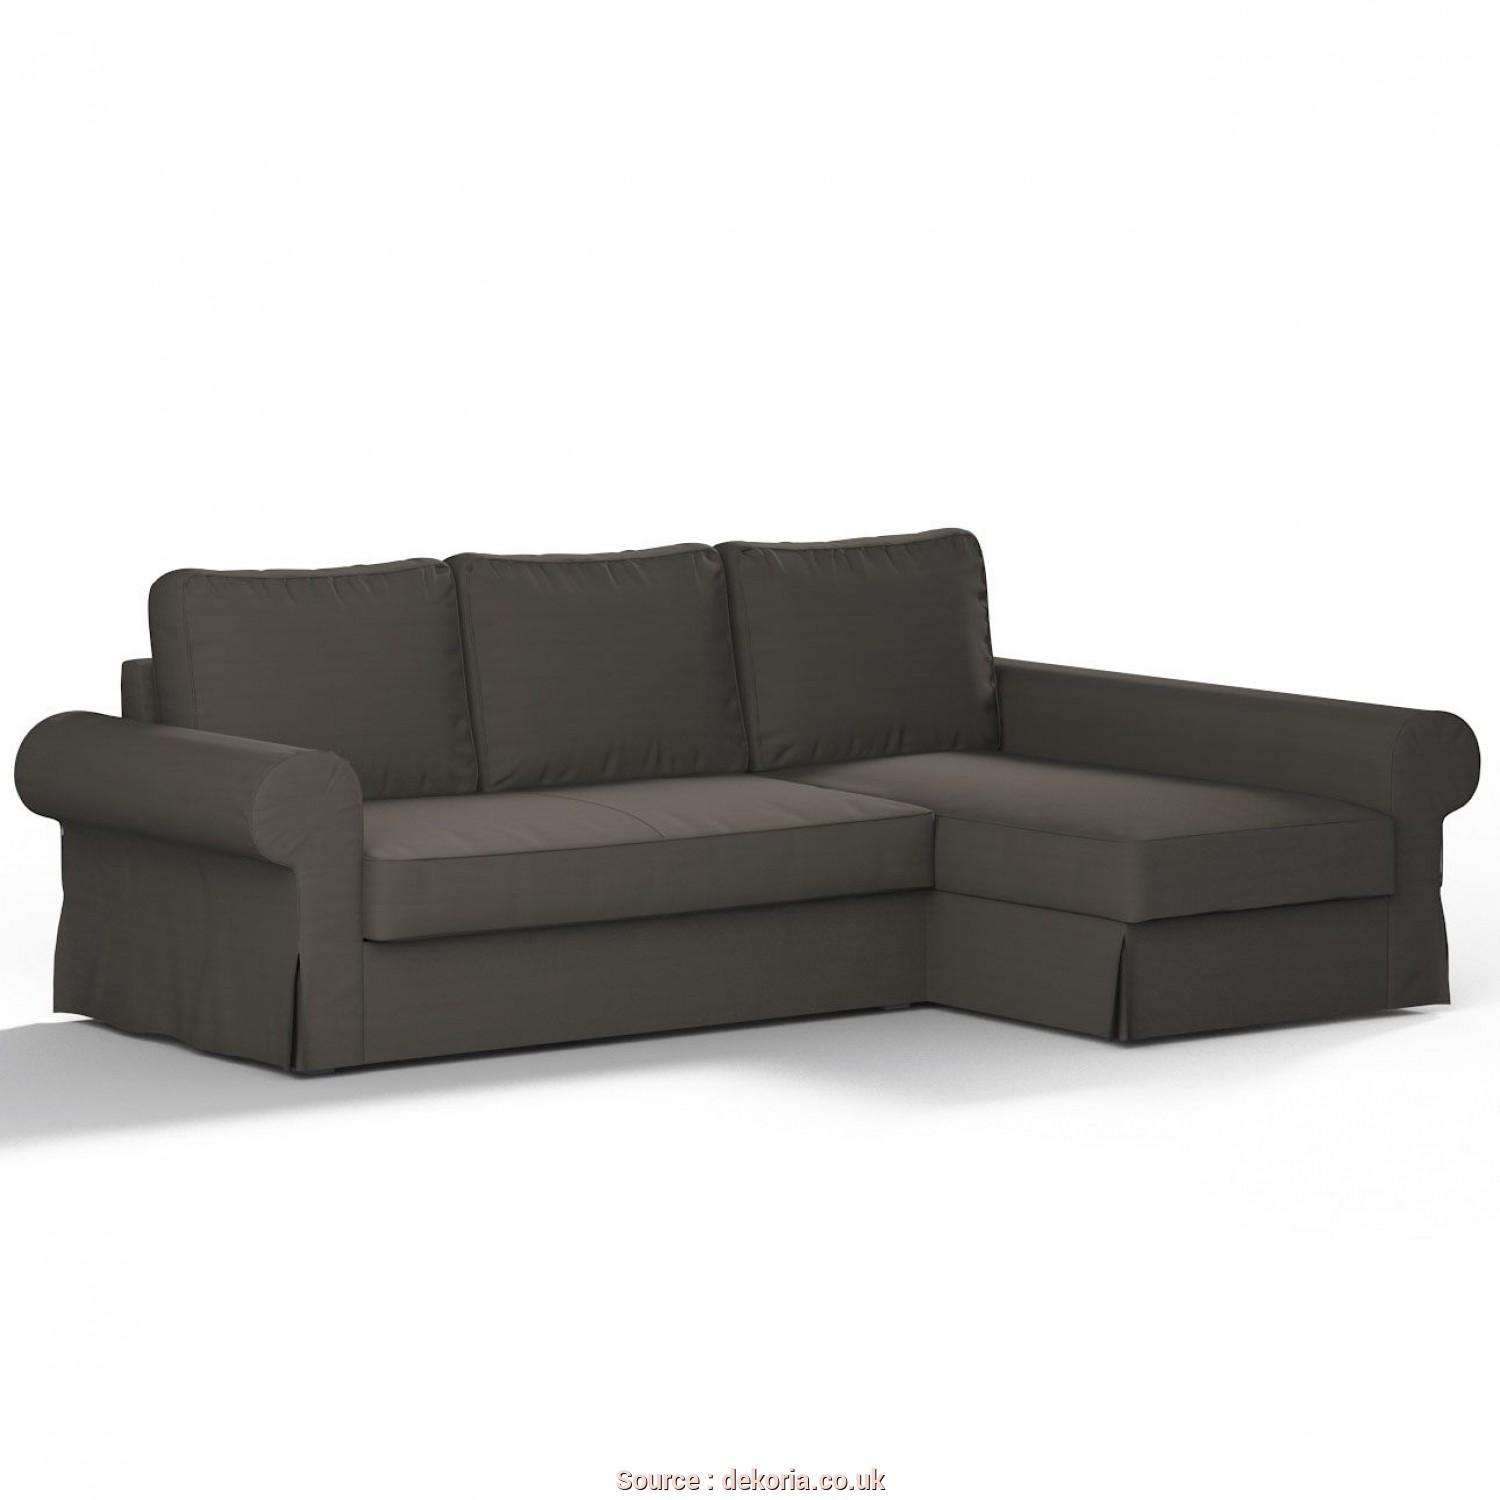 Backabro Ikea Beograd, Casuale Backabro Sofa, With Chaise Longue Cover In Collection Panama Cotton, Fabric: 702